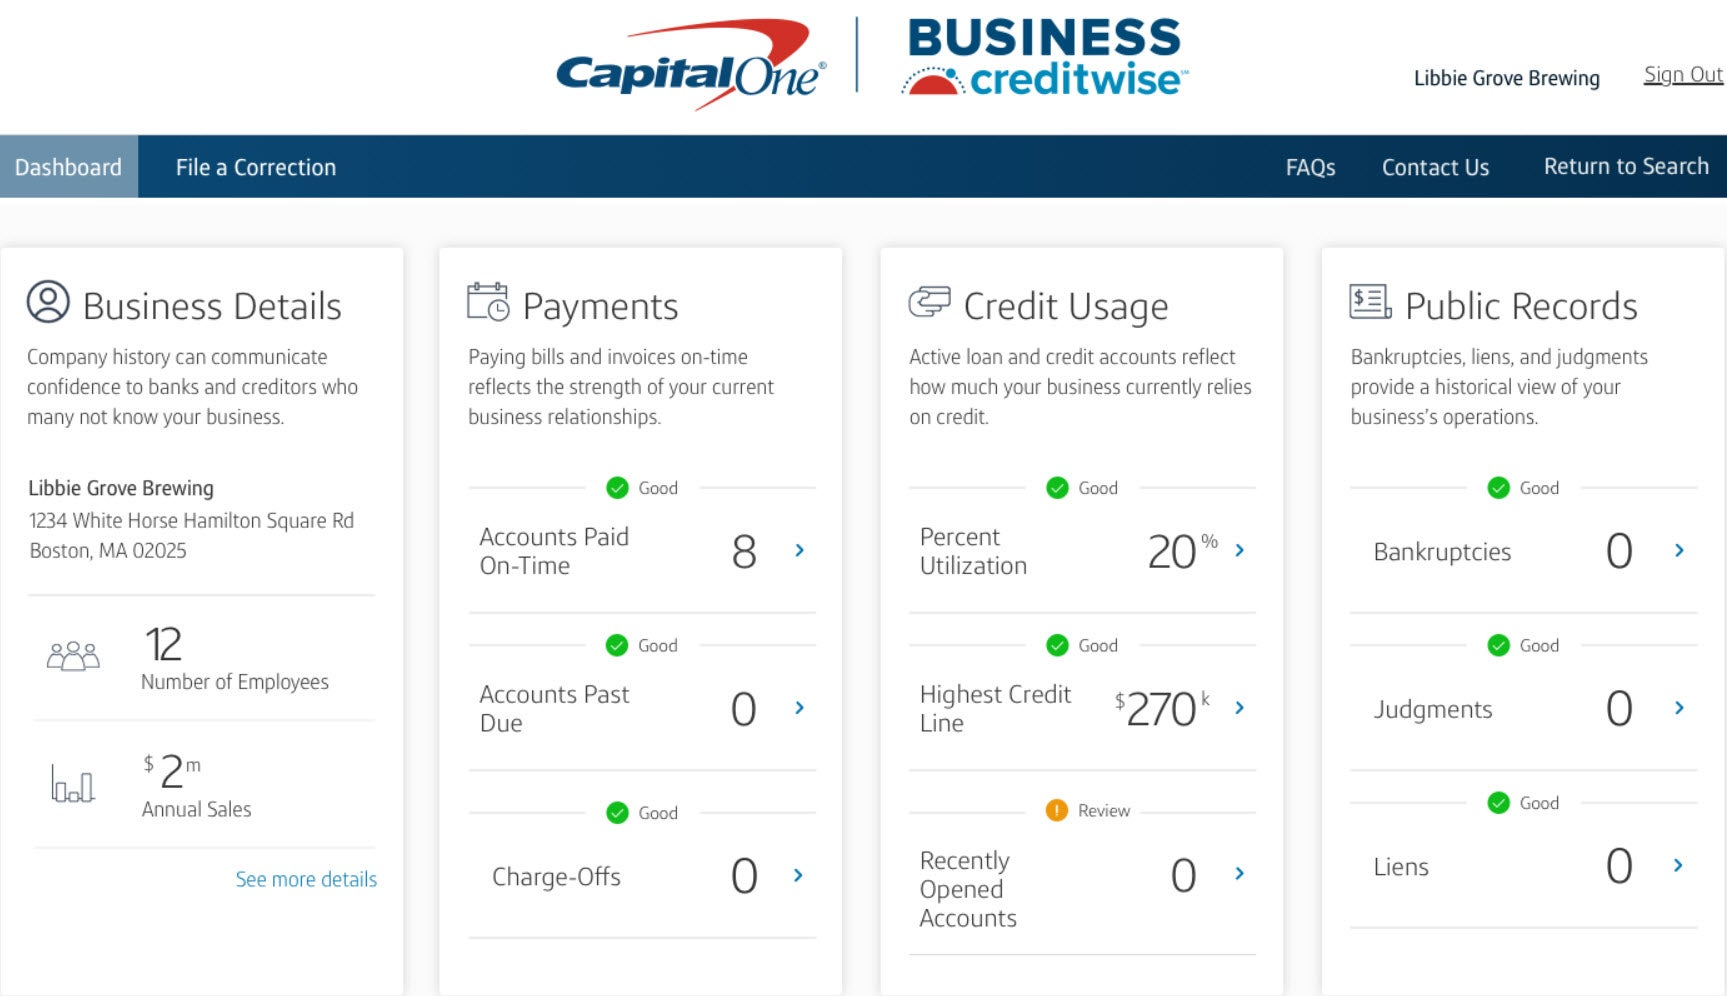 New helpful Capital One tool free for all small businesses